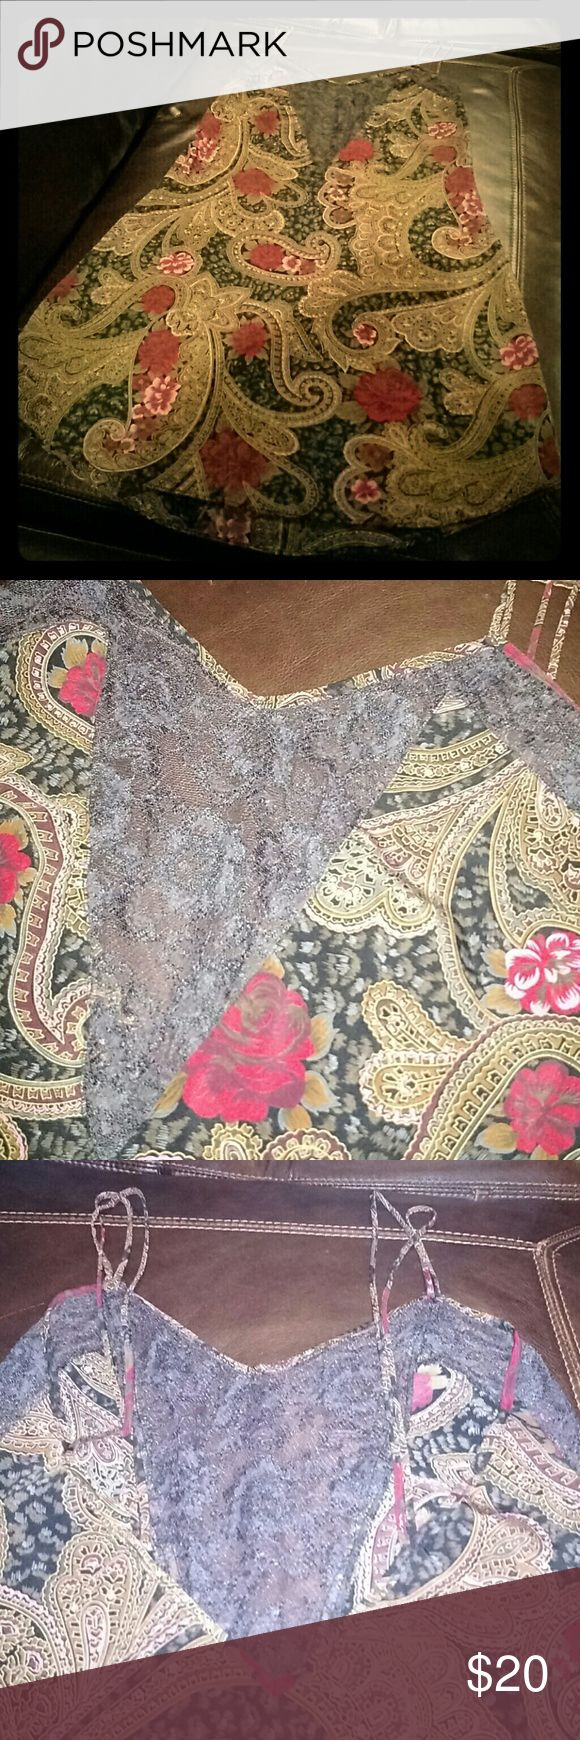 Vintage Victoria's Secret Nightie Brown and red floral nightie. A adorable brown lace front with sexy low back. Double straps. Petite small. Great condition. Victoria's Secret Intimates & Sleepwear